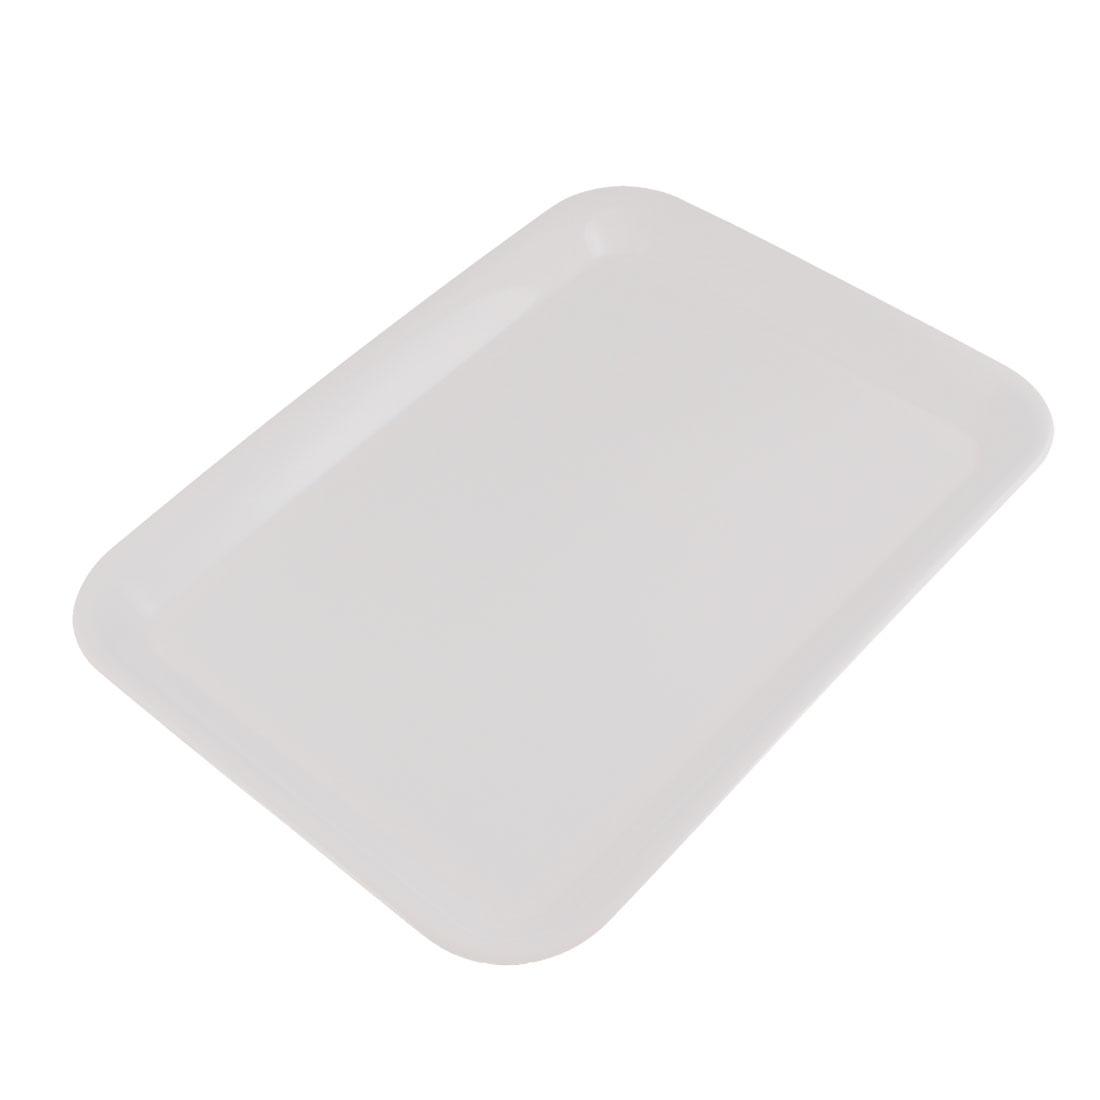 "Plastic Rectangle Shaped Dinner Serving Tray White 15"" Length"